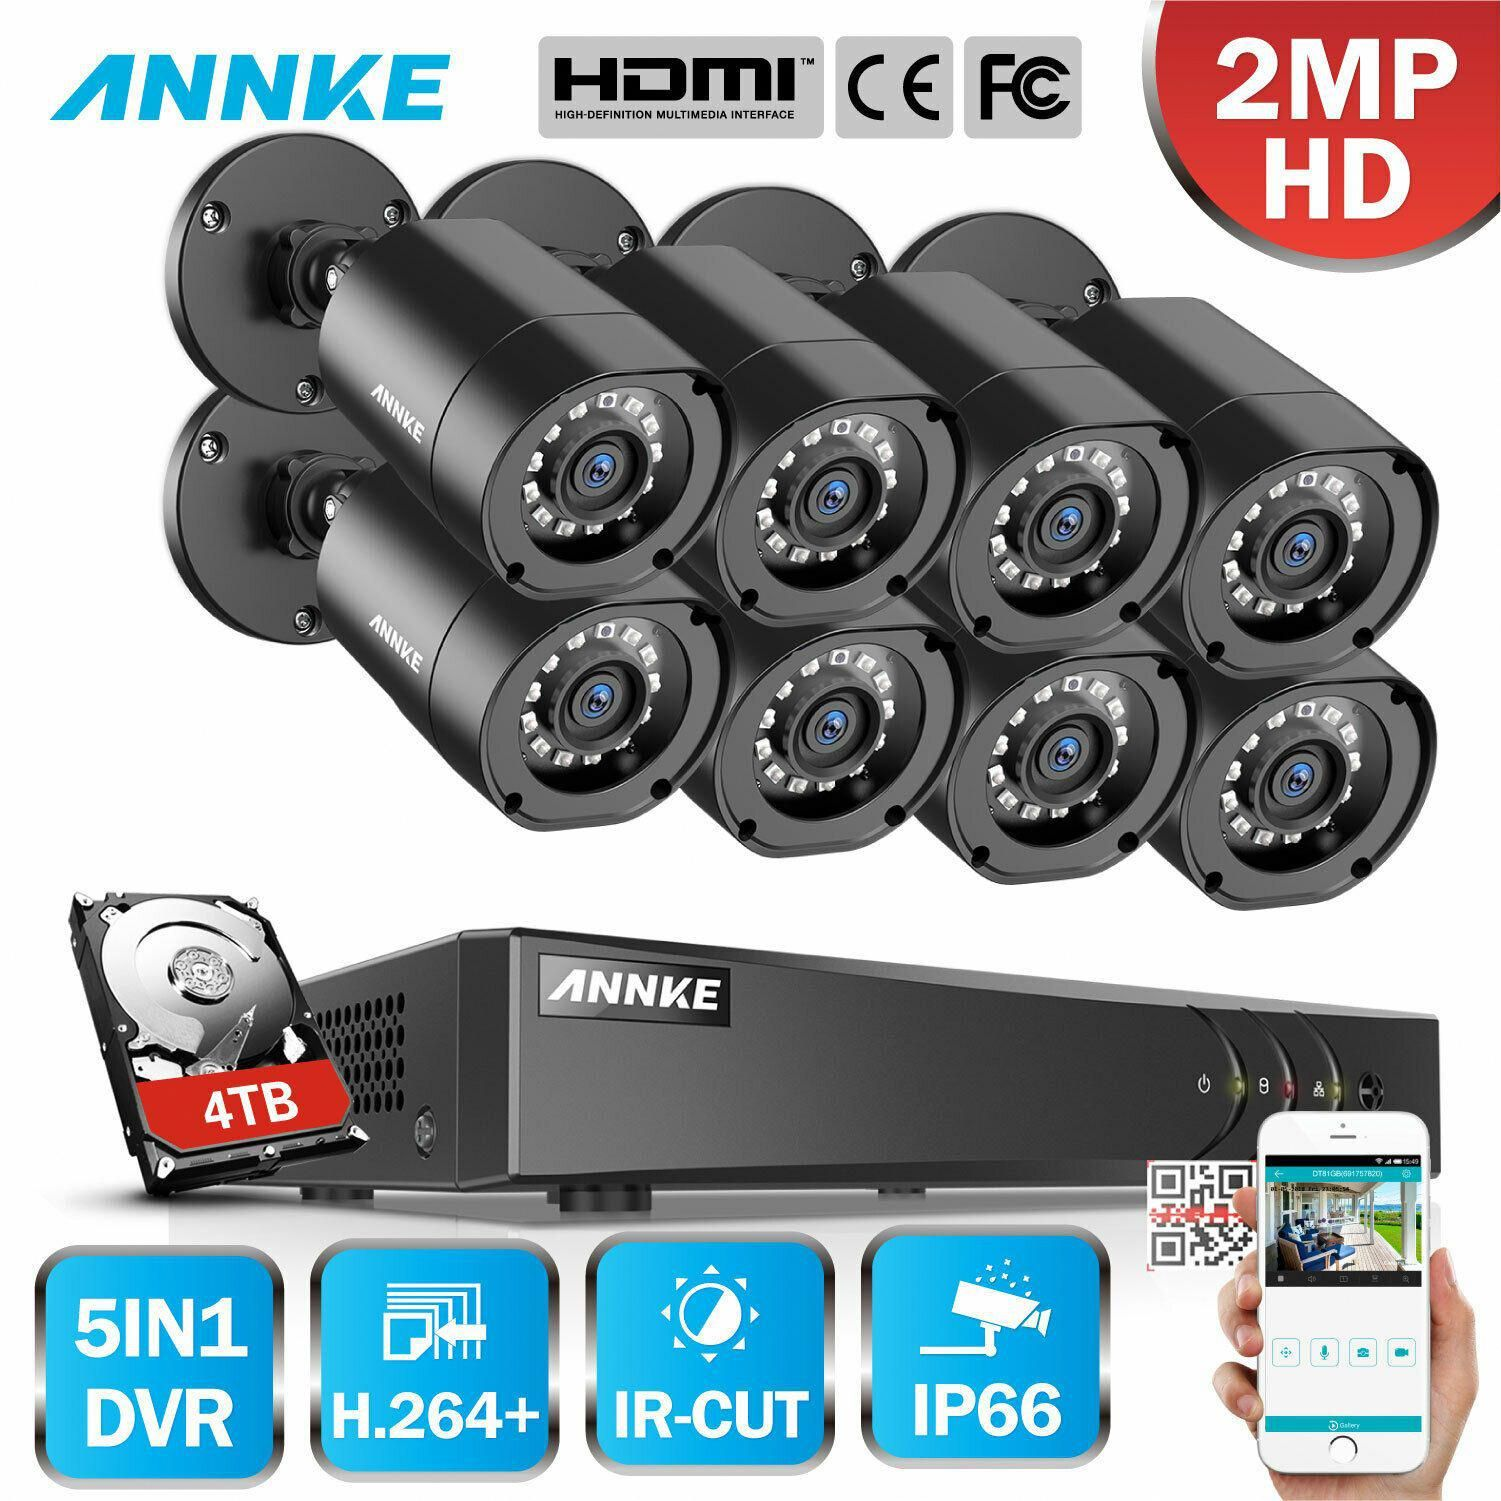 Http Www Alarm Security Us Securitycameras Homesecuritysystems Homesecuritycameras Wireless Home Security Systems Security Camera Ideas Best Security System